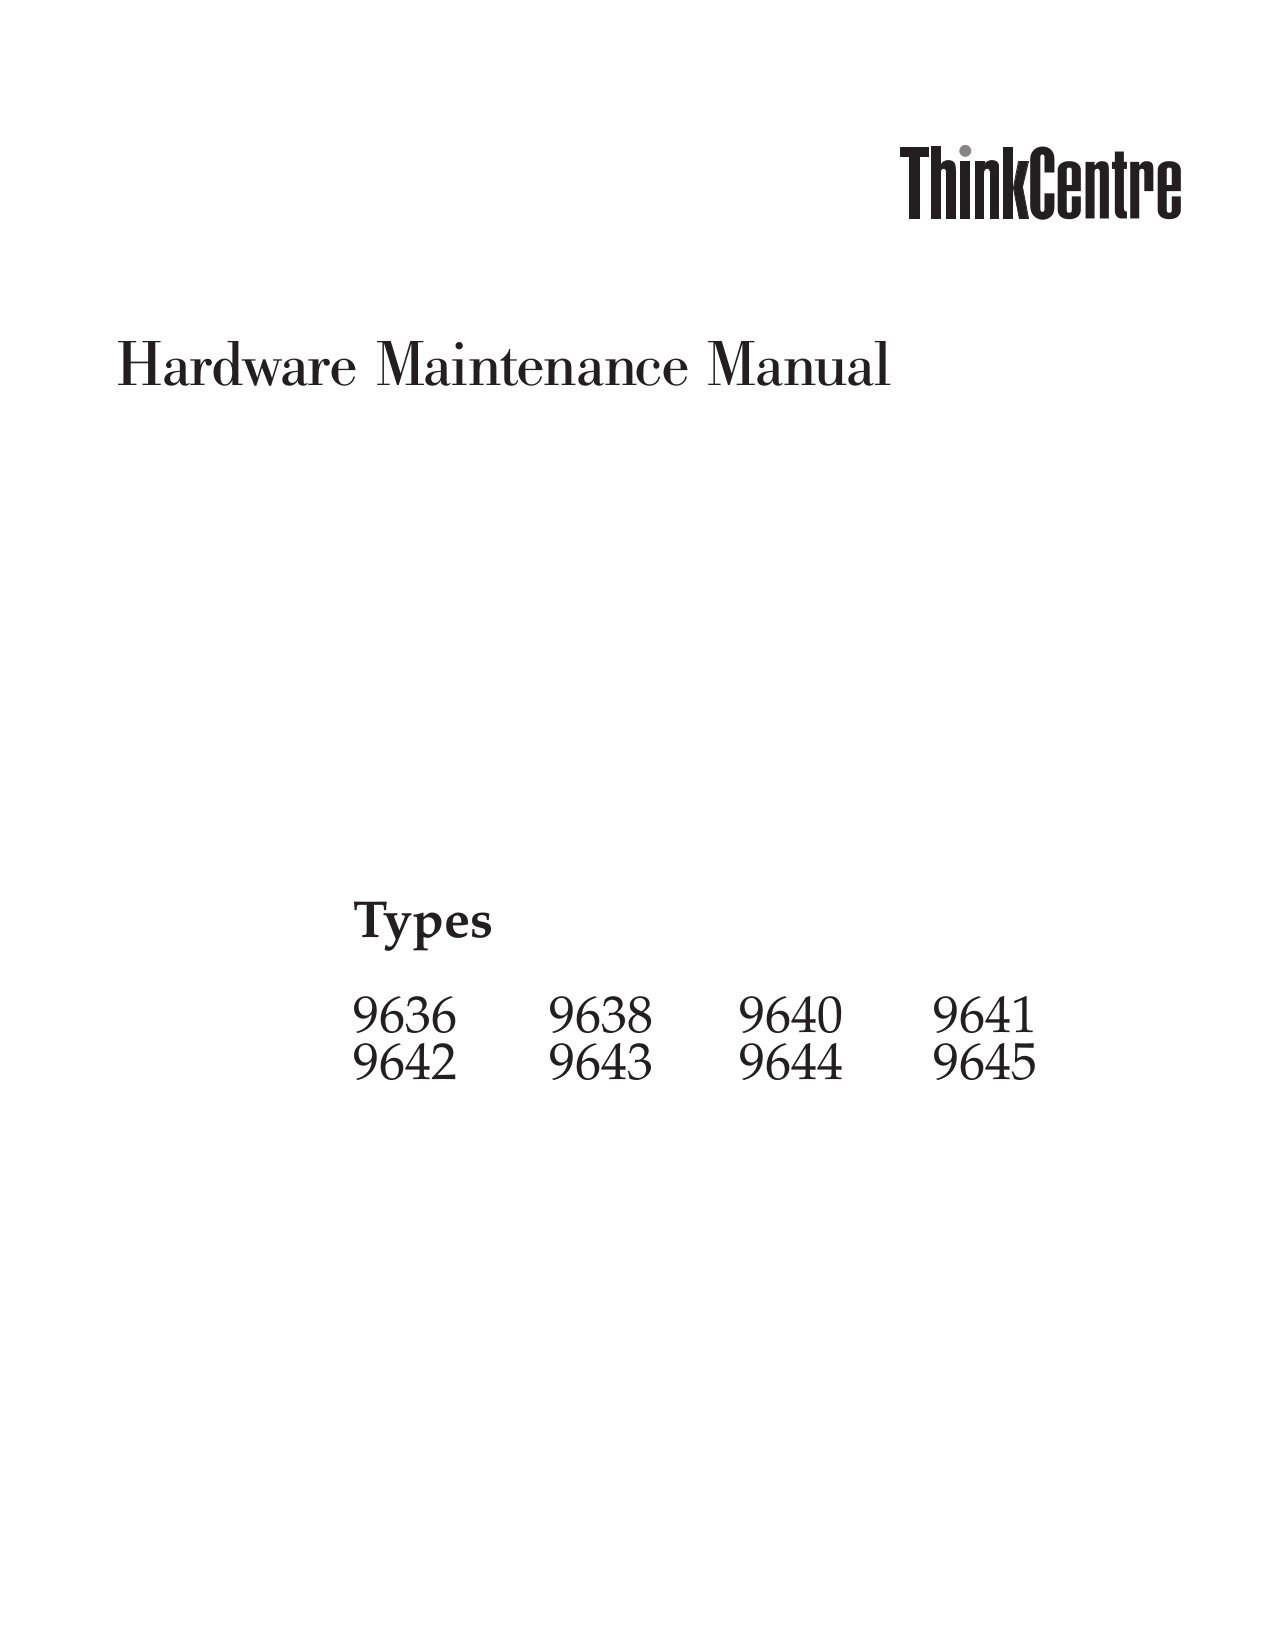 pdf for Lenovo Desktop ThinkCentre M55e 9644 manual